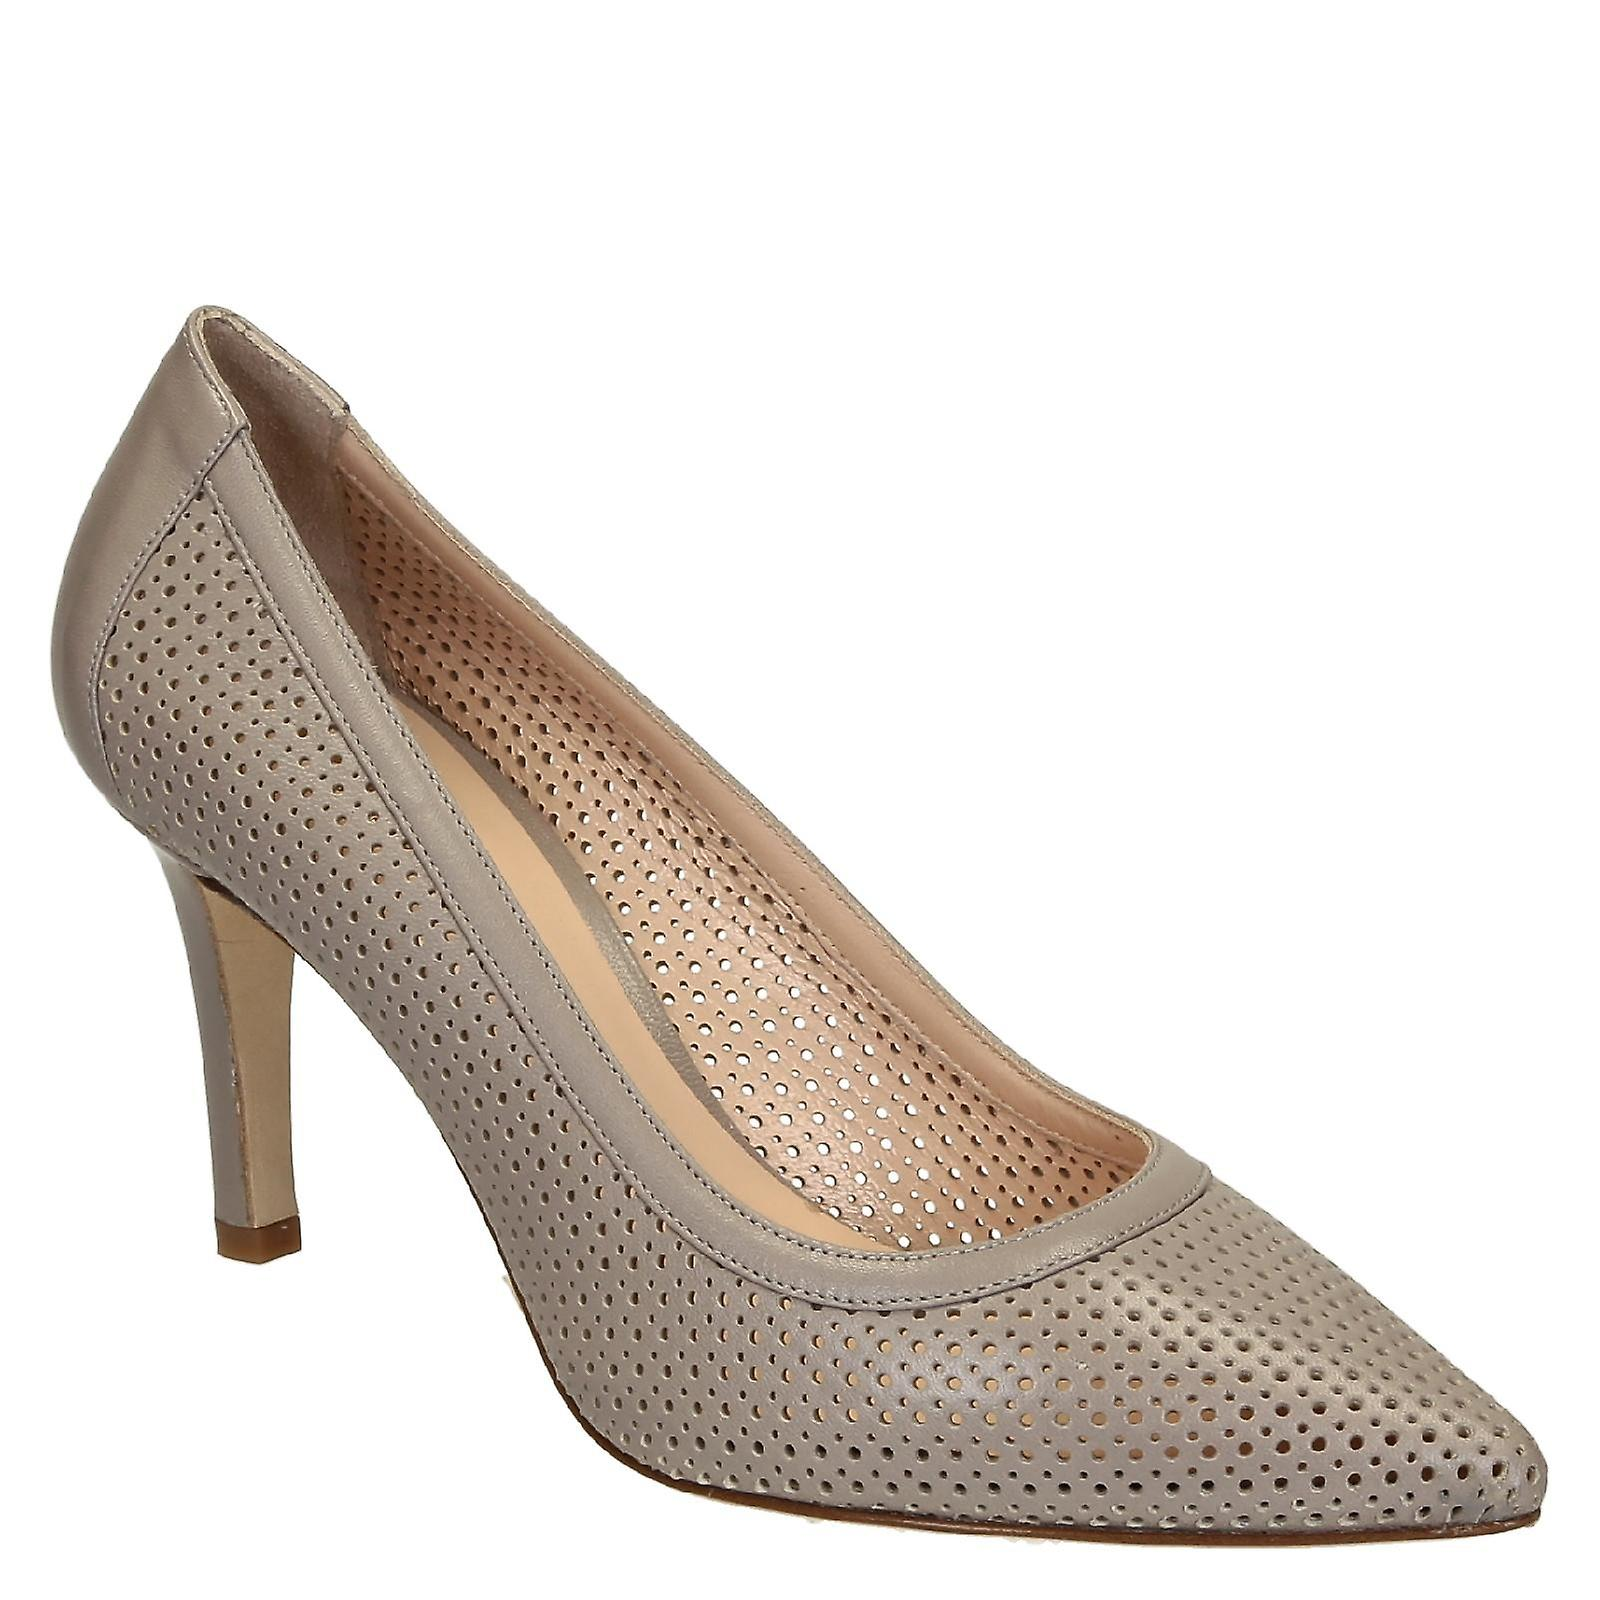 Shell color calf perforated leather mid-heels pumps ikA5S